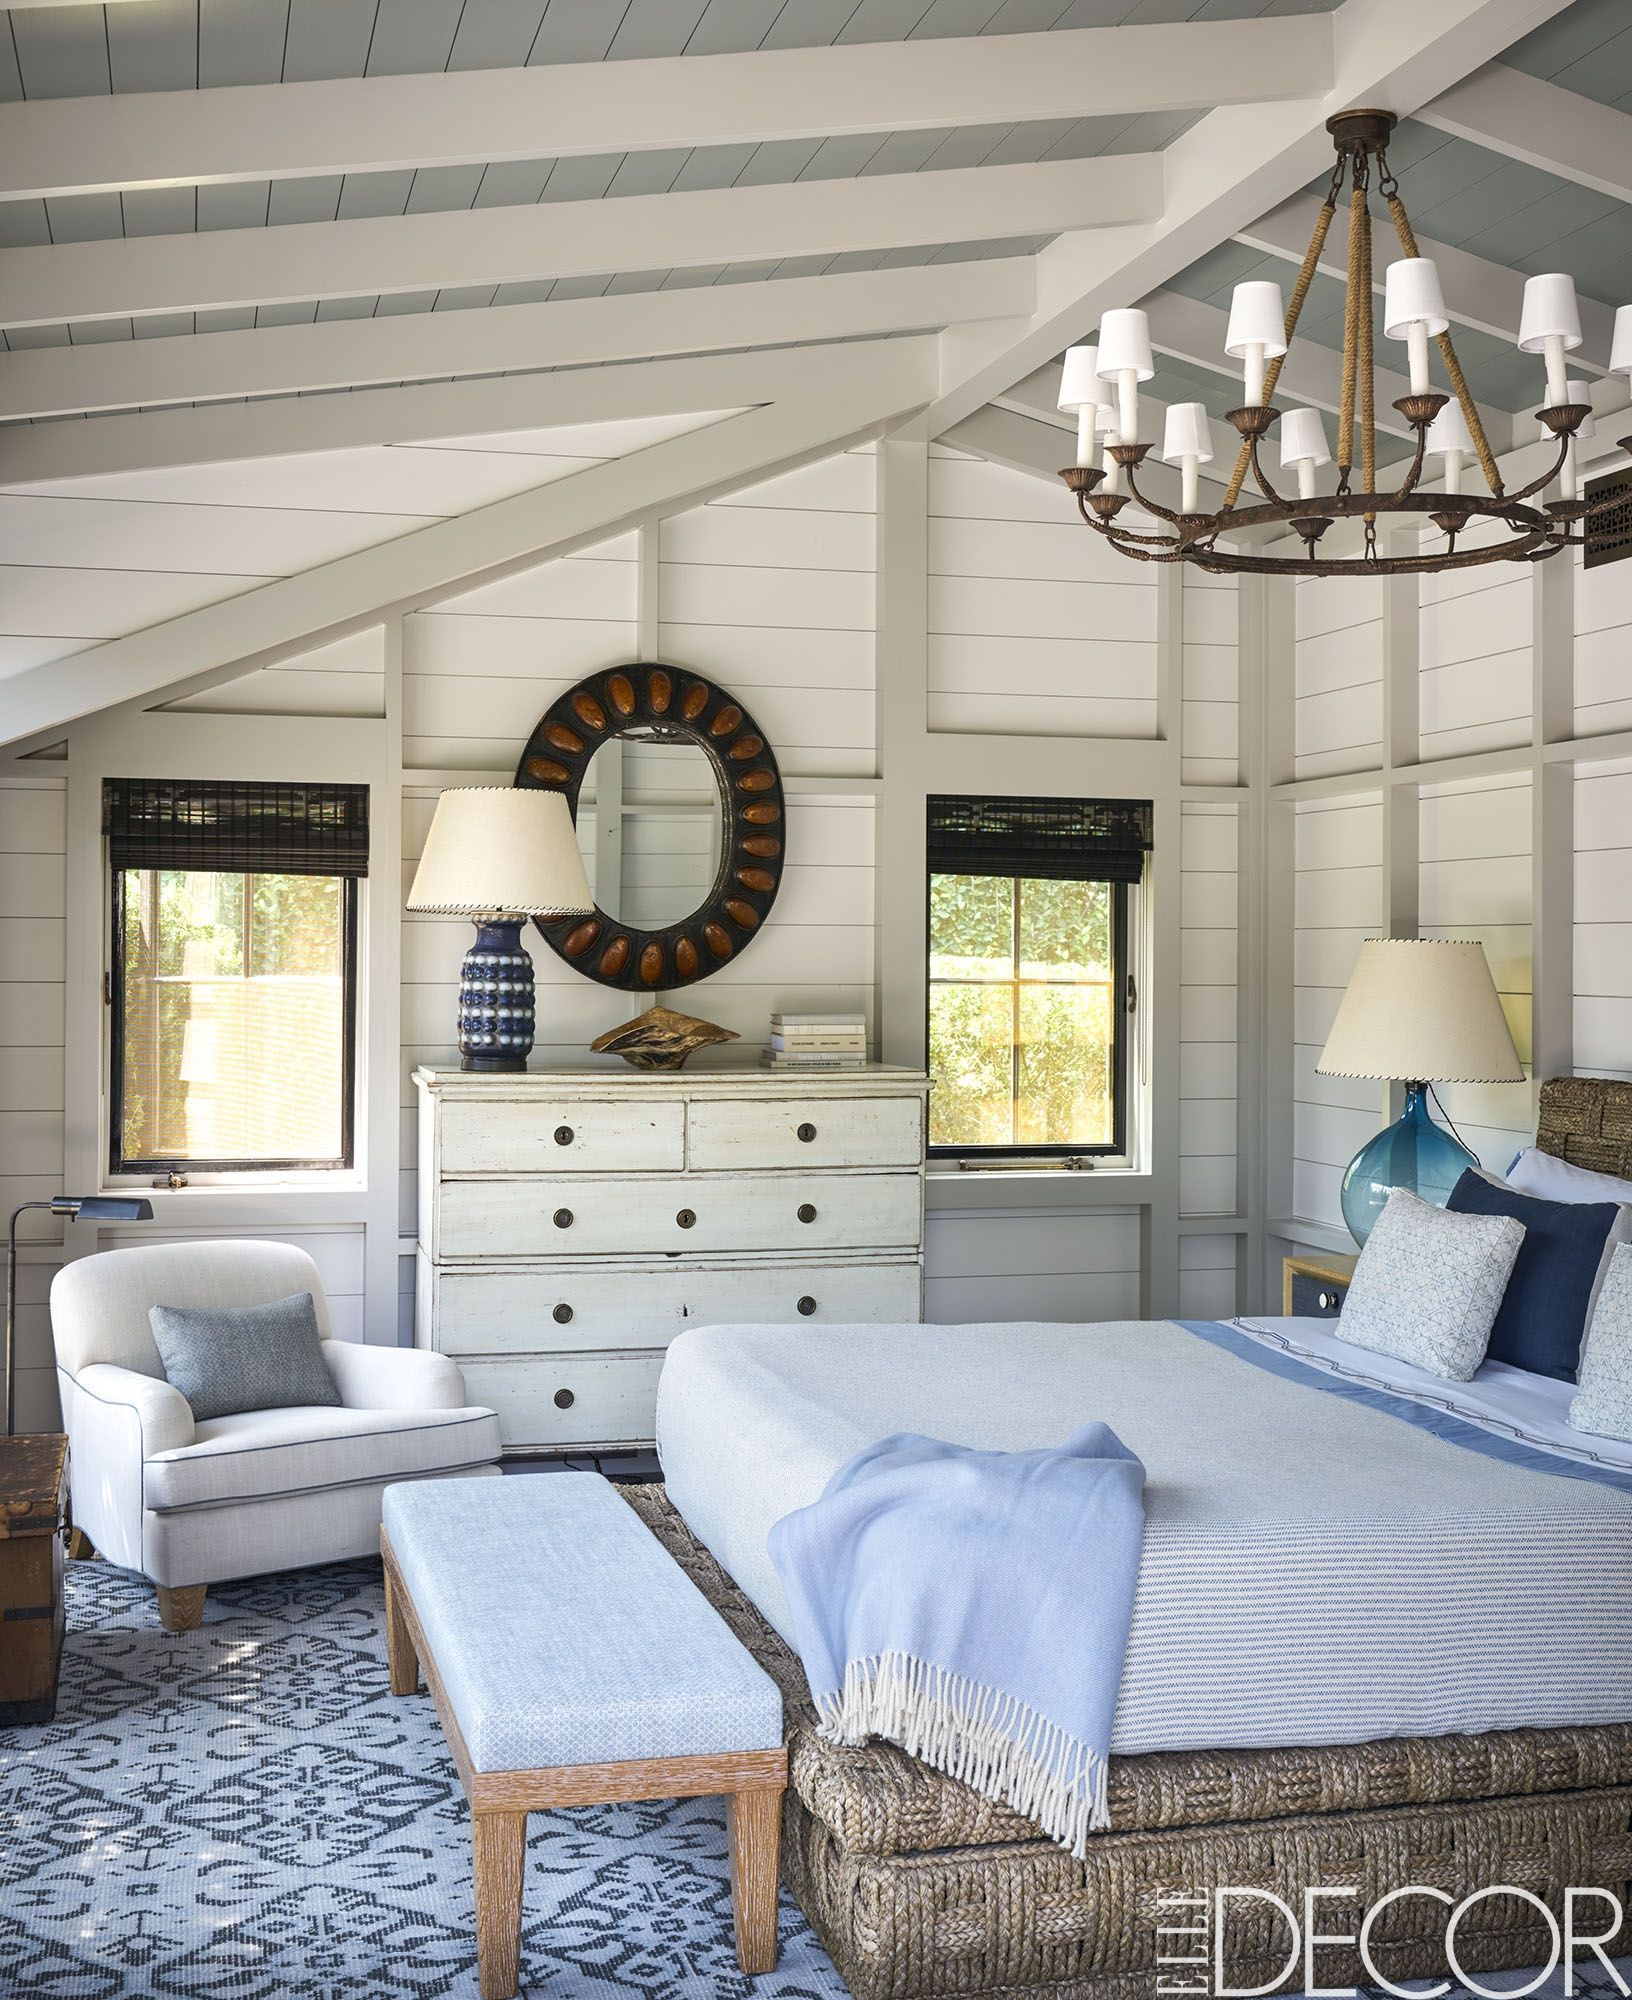 33 Coastal Home Decor Ideas Rooms with Coastal Style